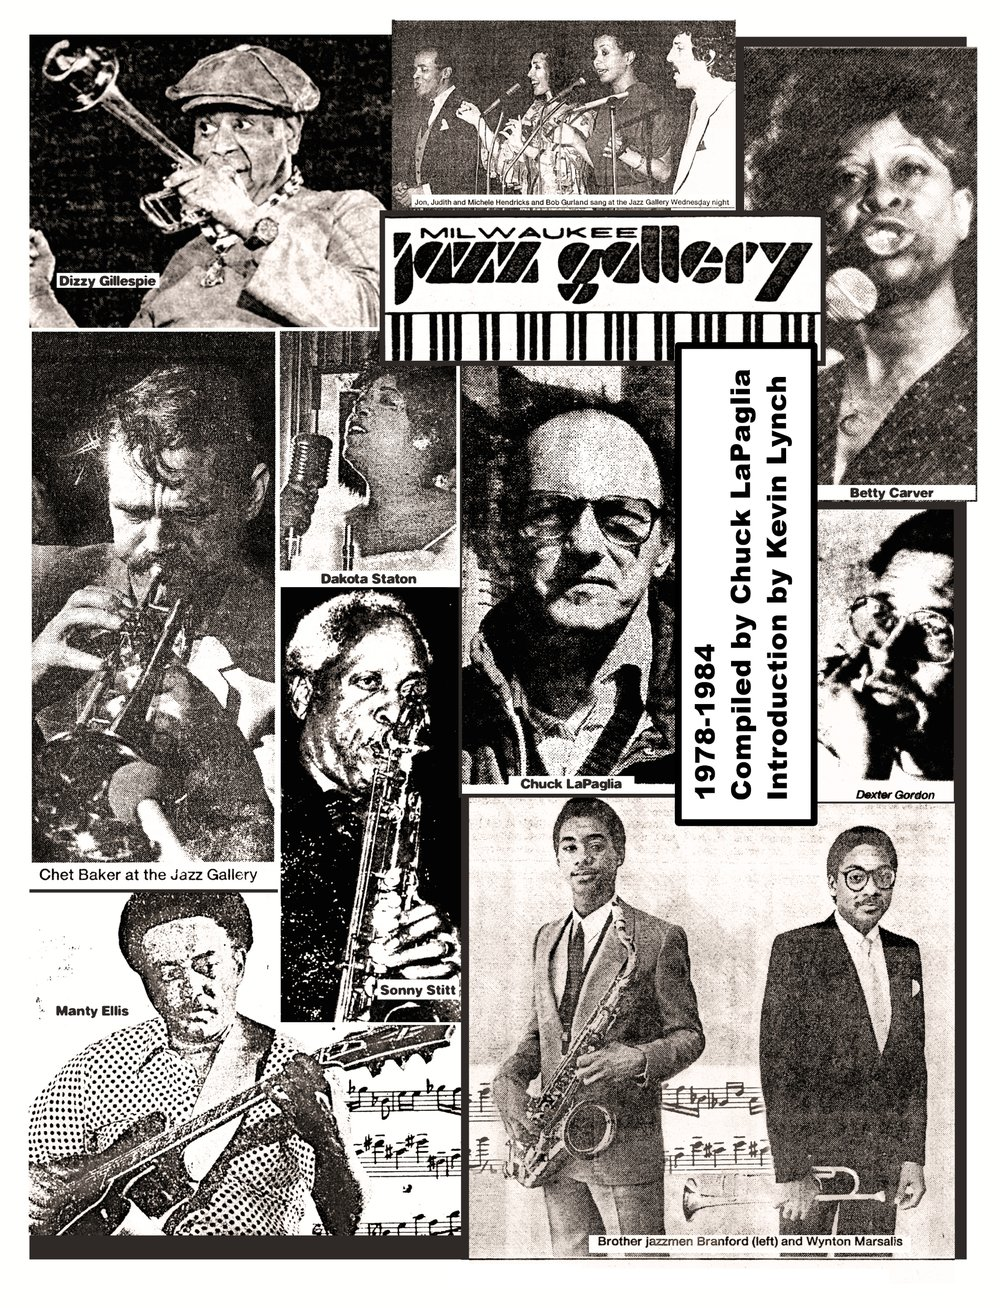 mke jazz gallery anthology cover jpg.jpg